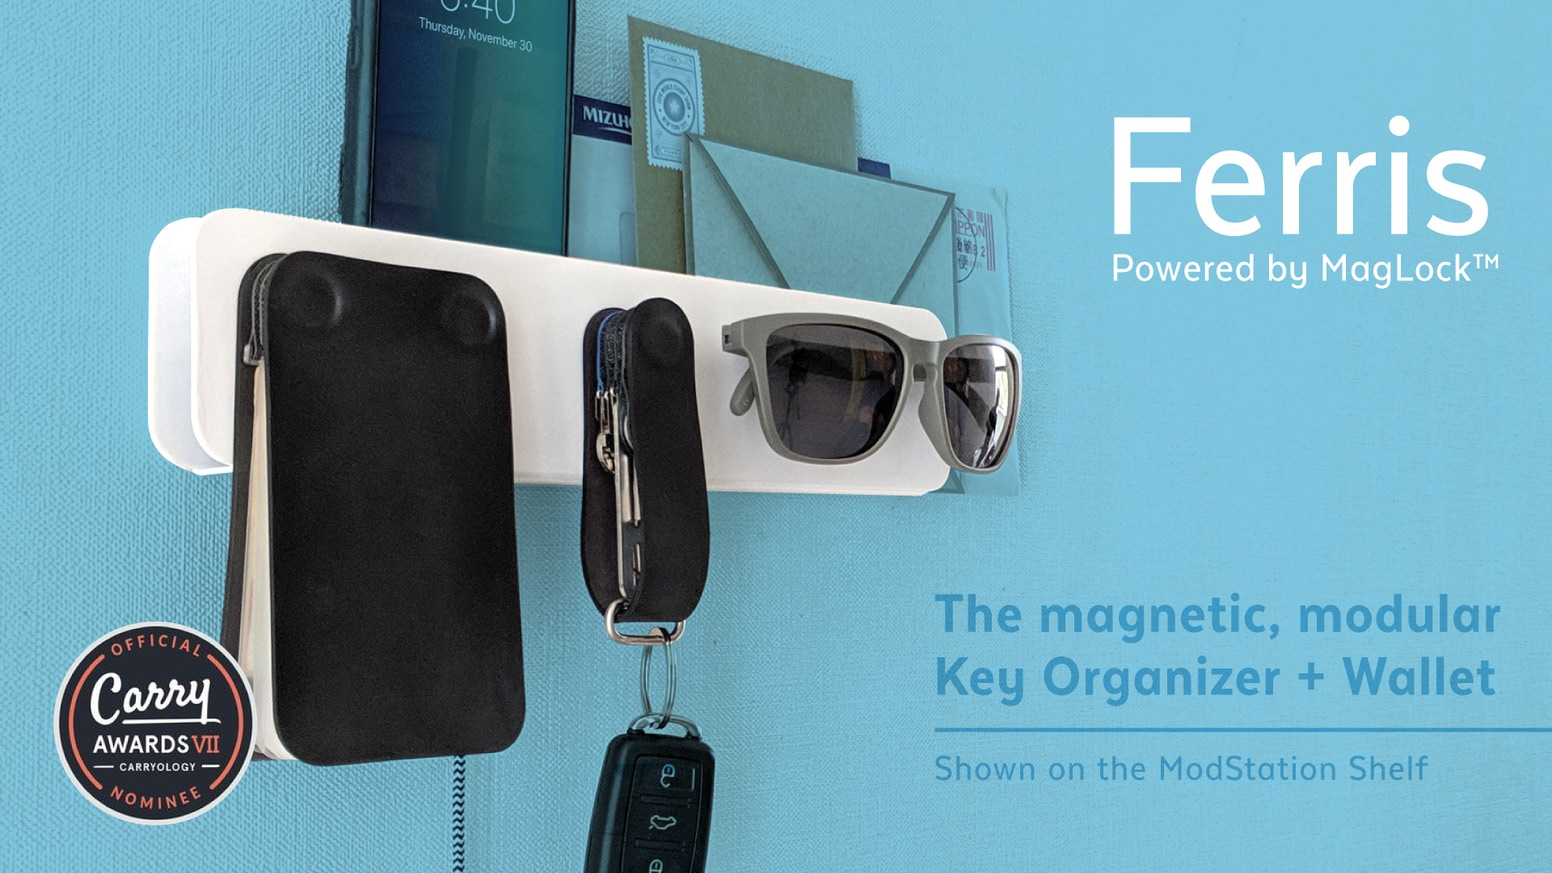 The best key organizer is part of the life-tidying Ferris System! Modular, magnetic everyday items streamline your out-the-door routine